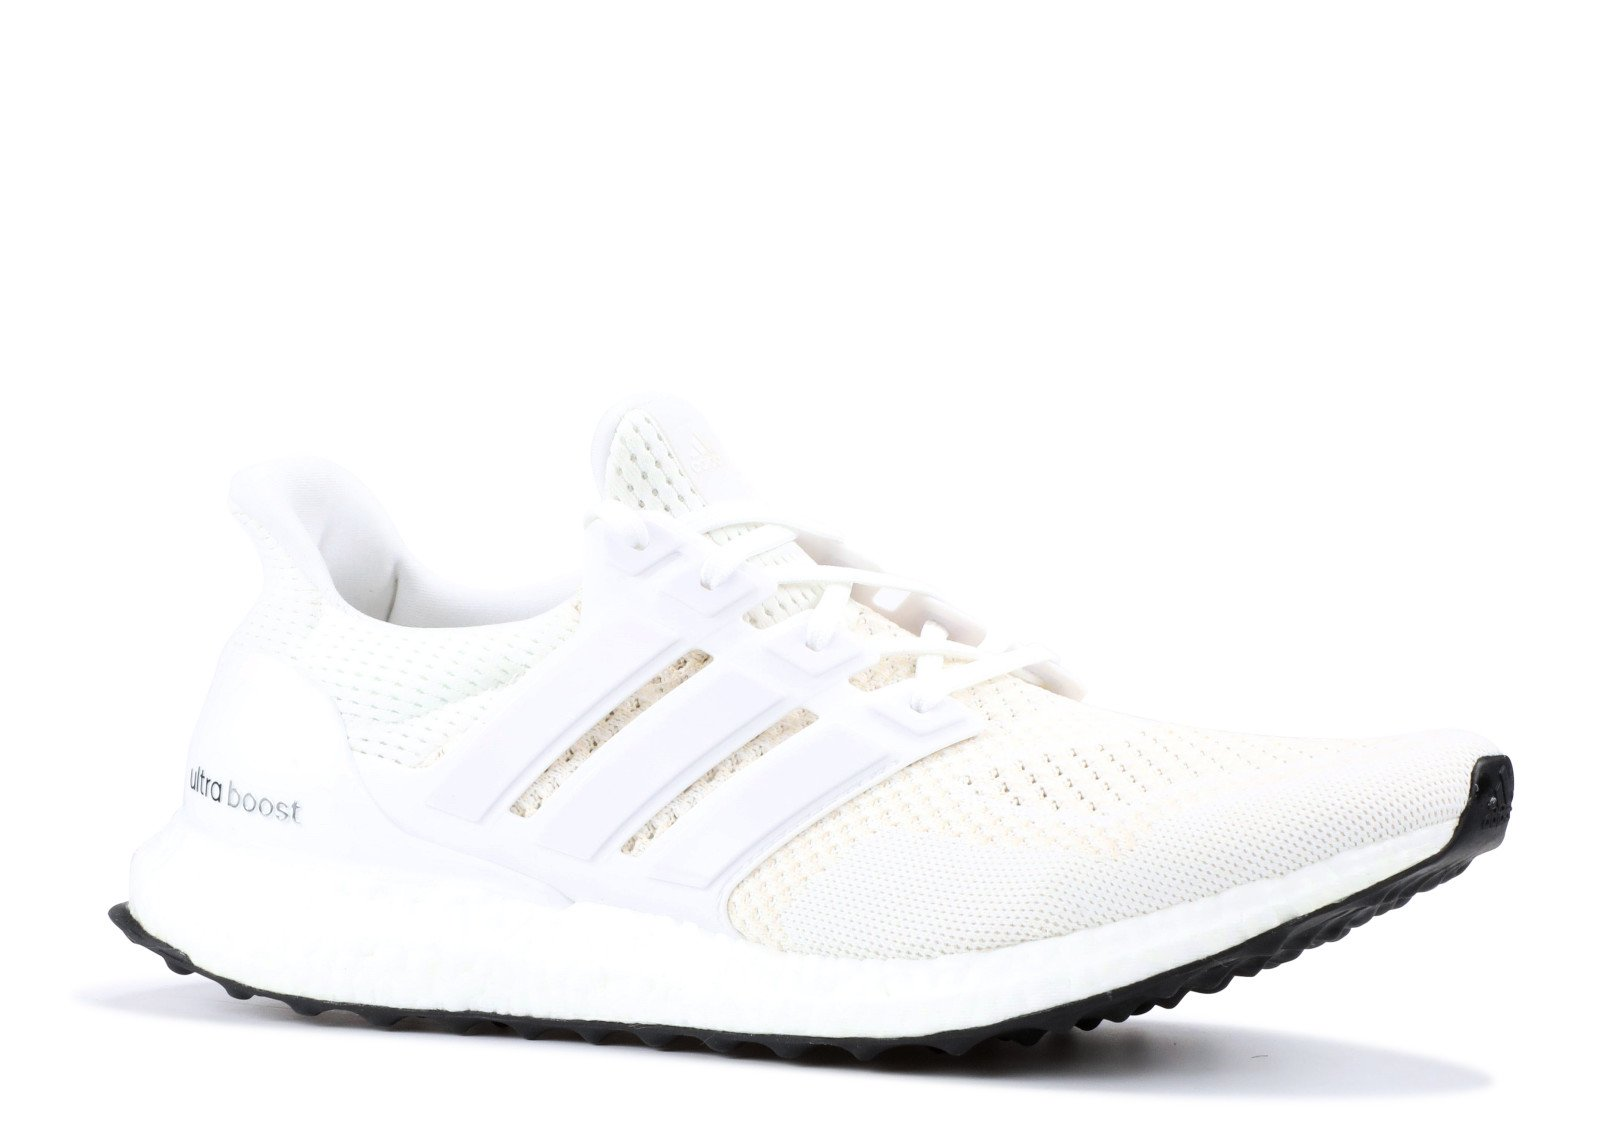 e02c349b2c4 Adidas Ultra Boost White Size 9 Top Deals   Lowest Price ...